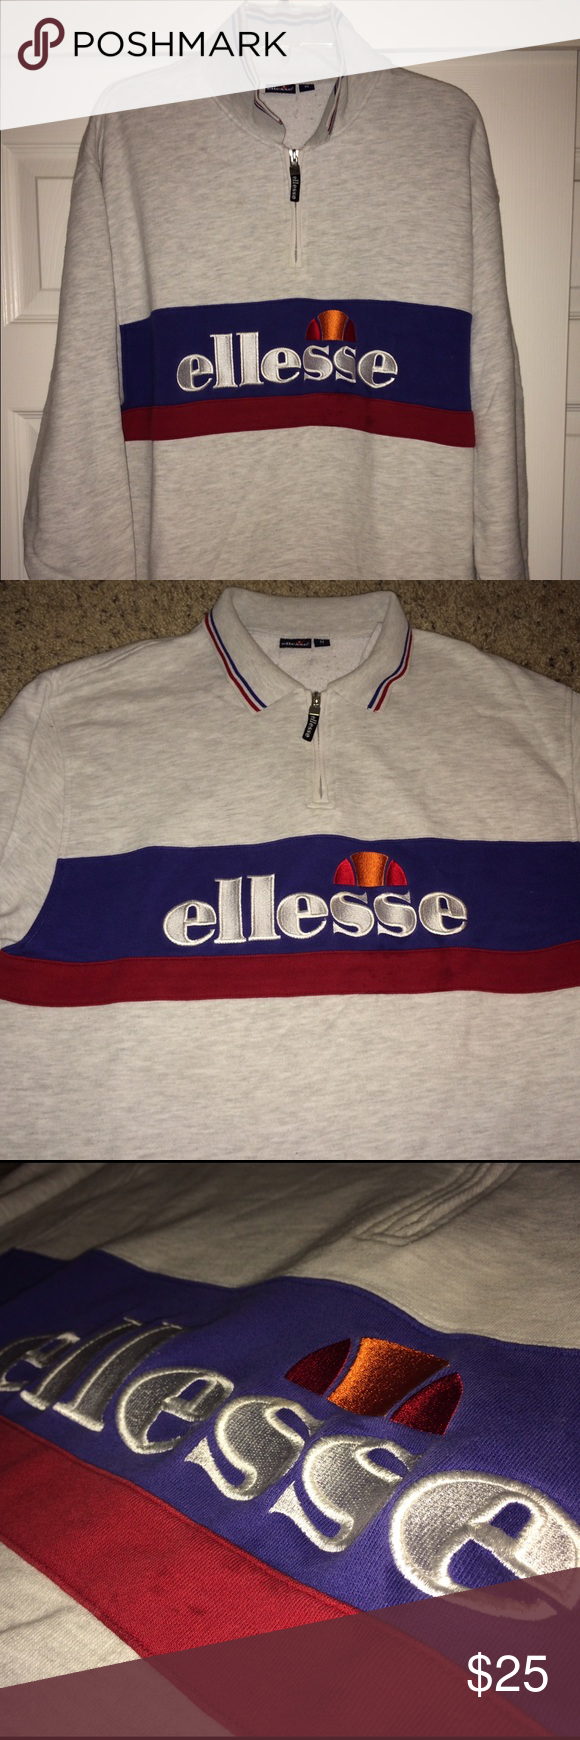 "Vintage Ellesse sweaters Vintage Ellesse sweaters..size adult Medium..armpit to armpit 21.5""...top to bottom 27.5""...Good used condition. Ellesse Sweaters"